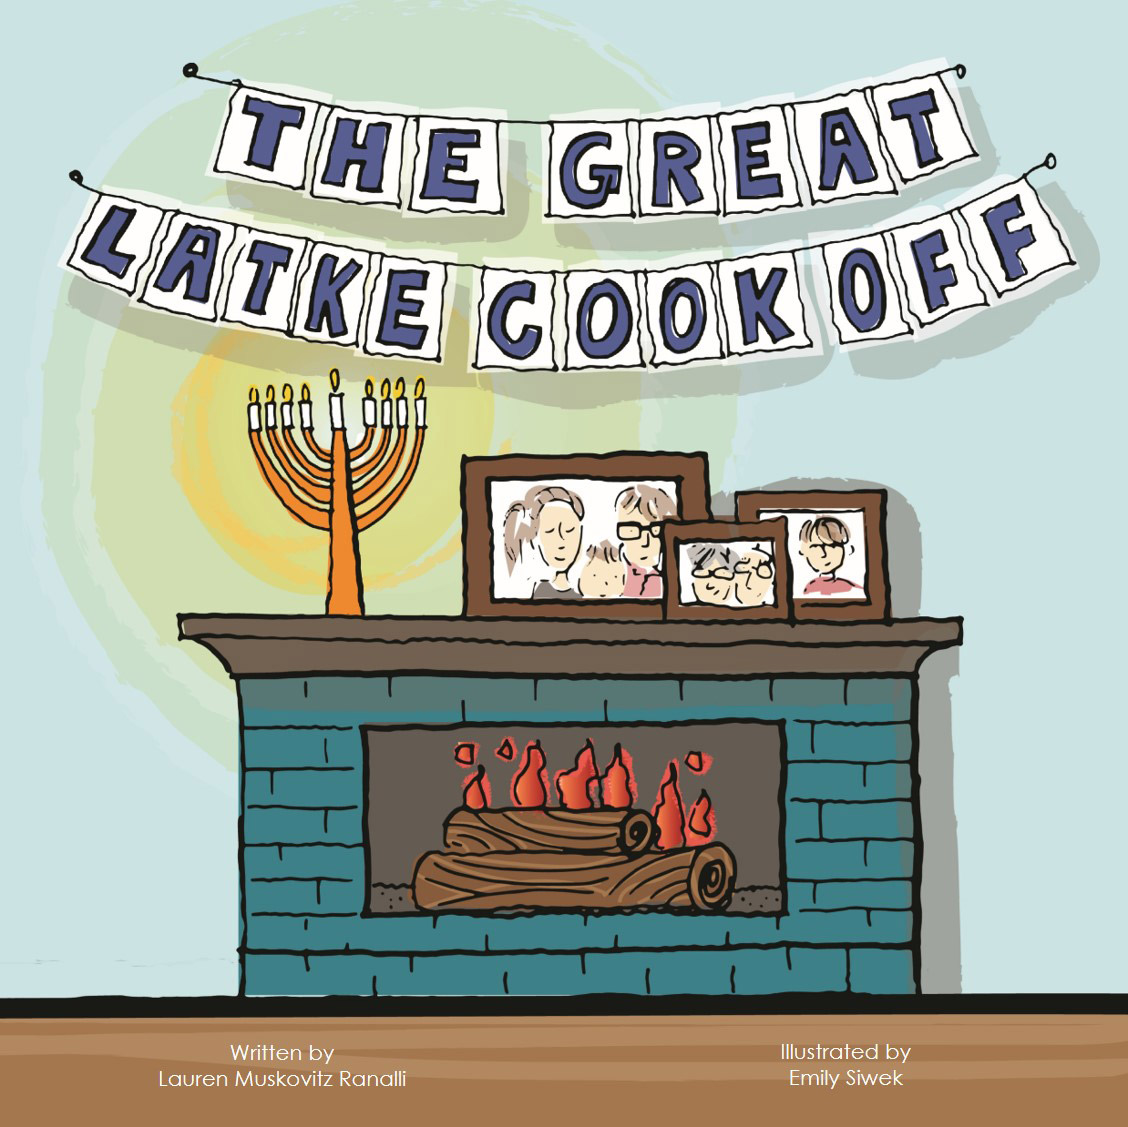 Great latke cook off